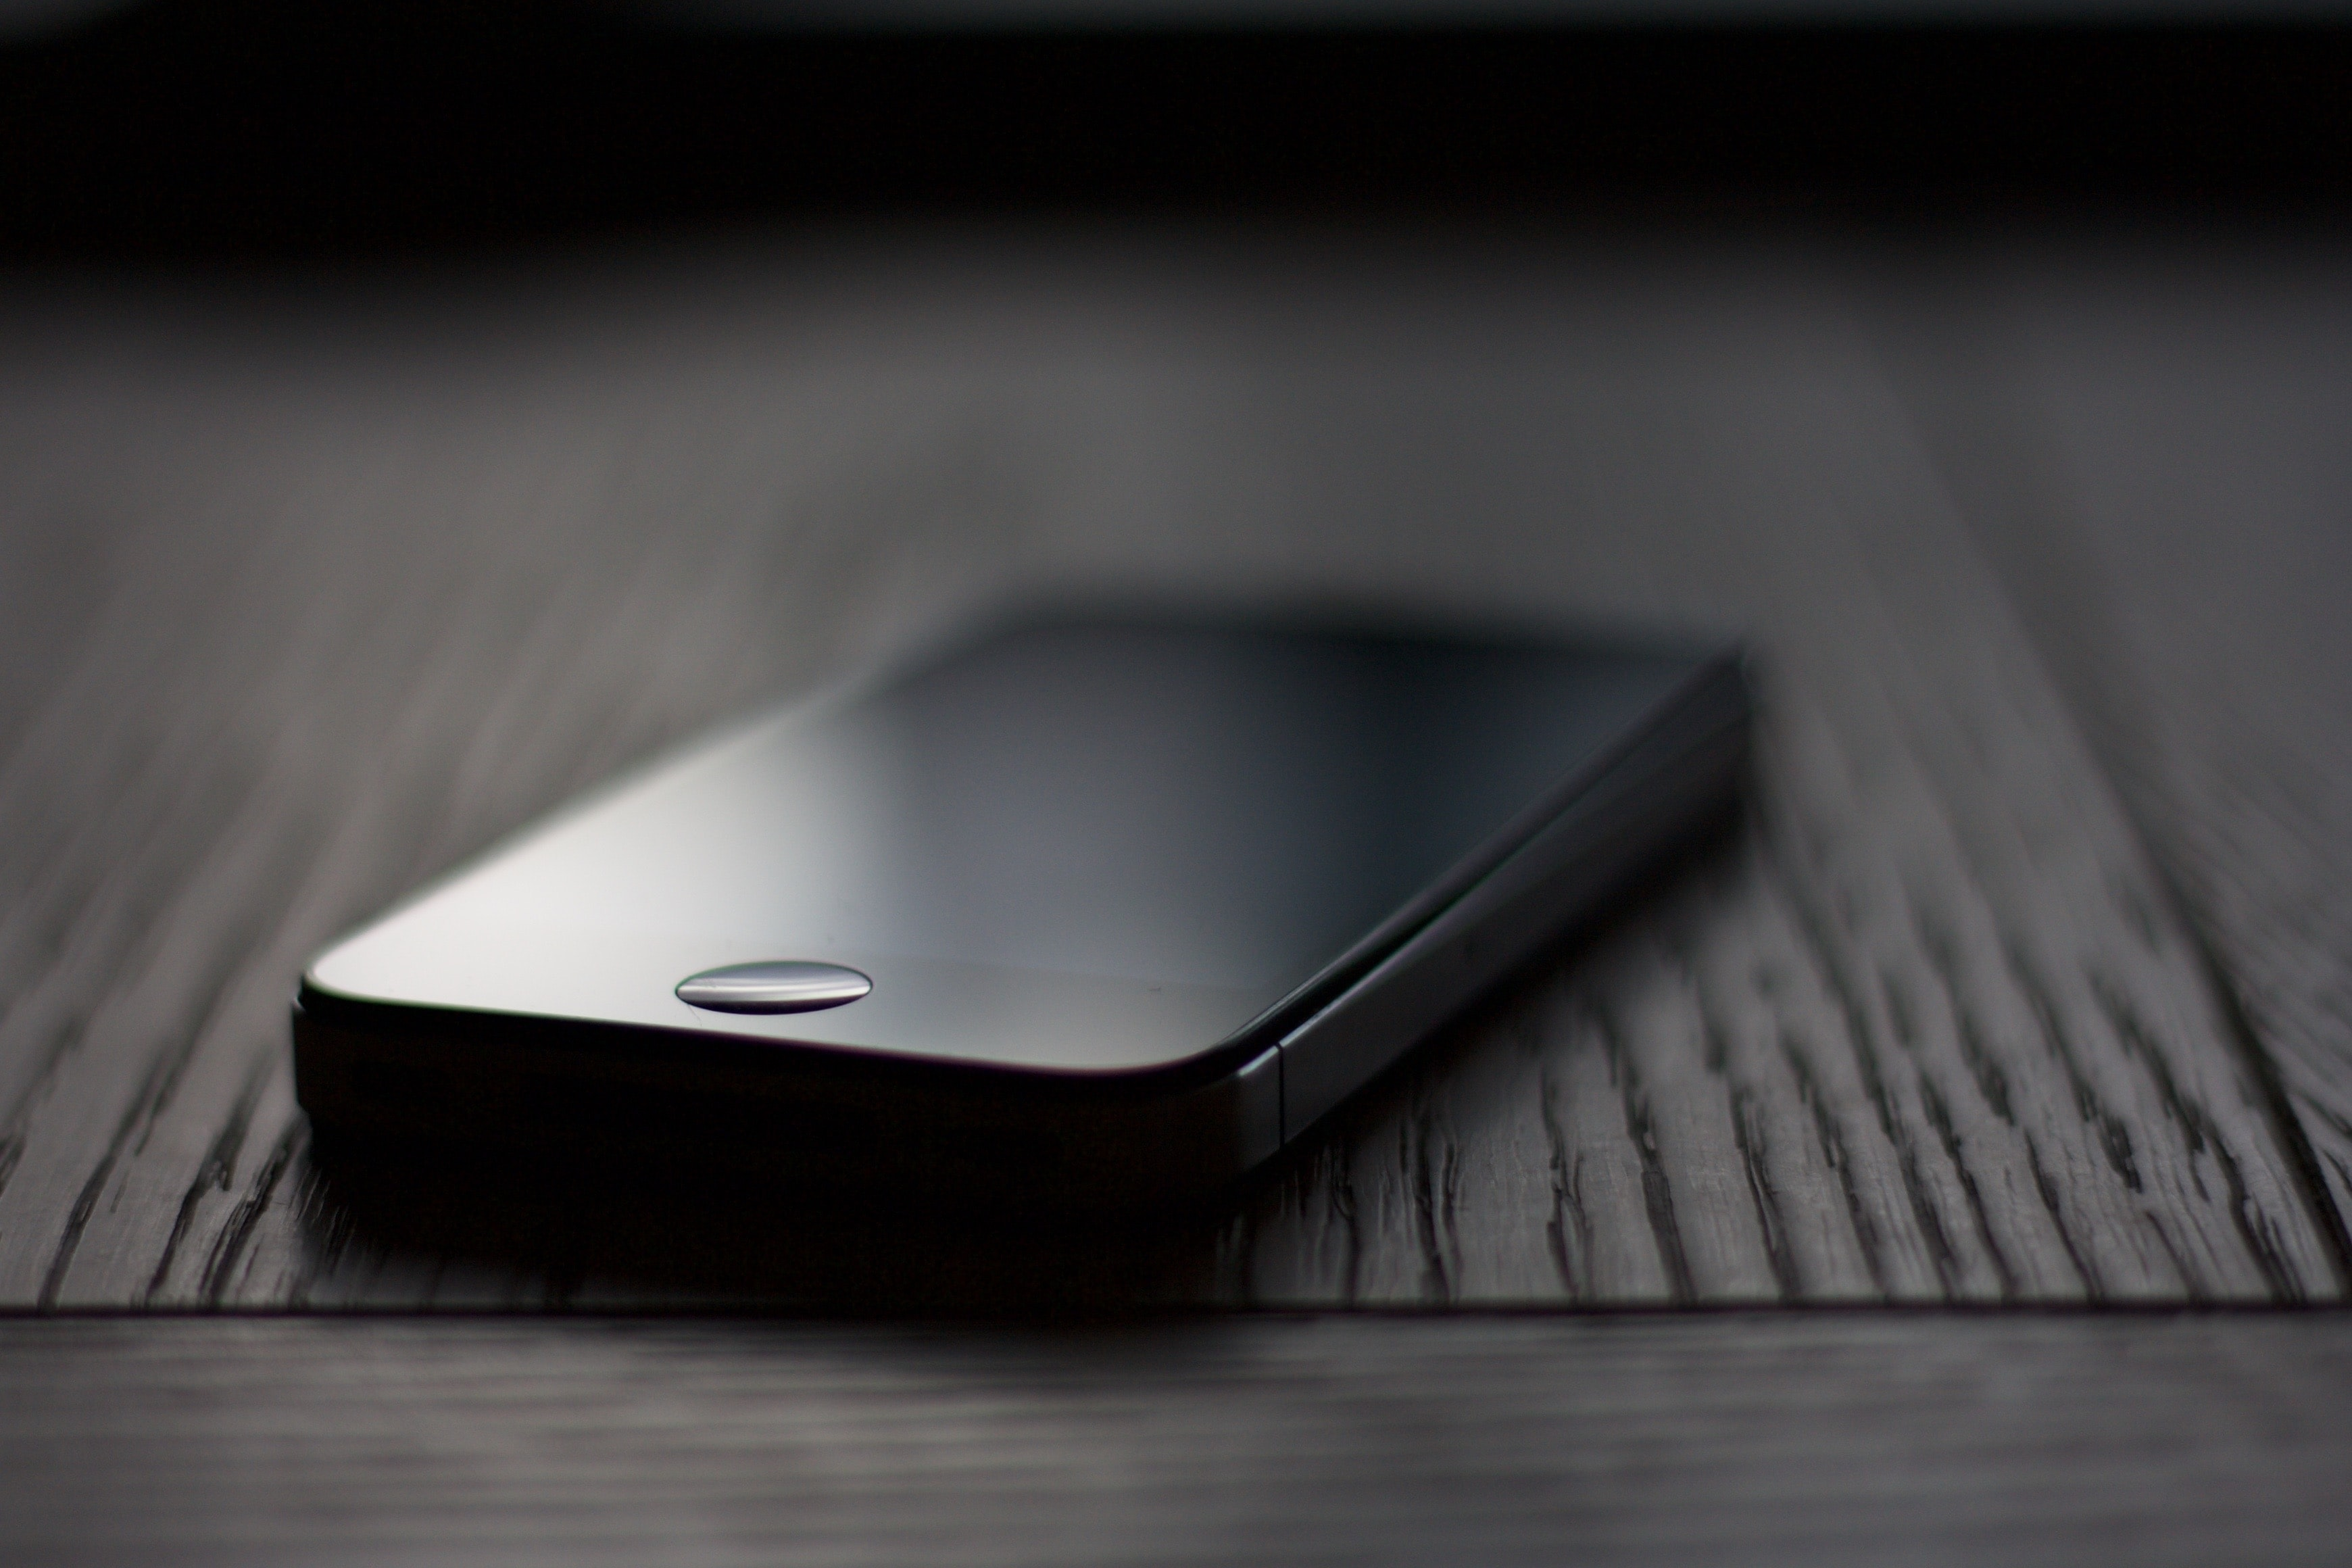 shallow focus photography of space gray iPhone 5s